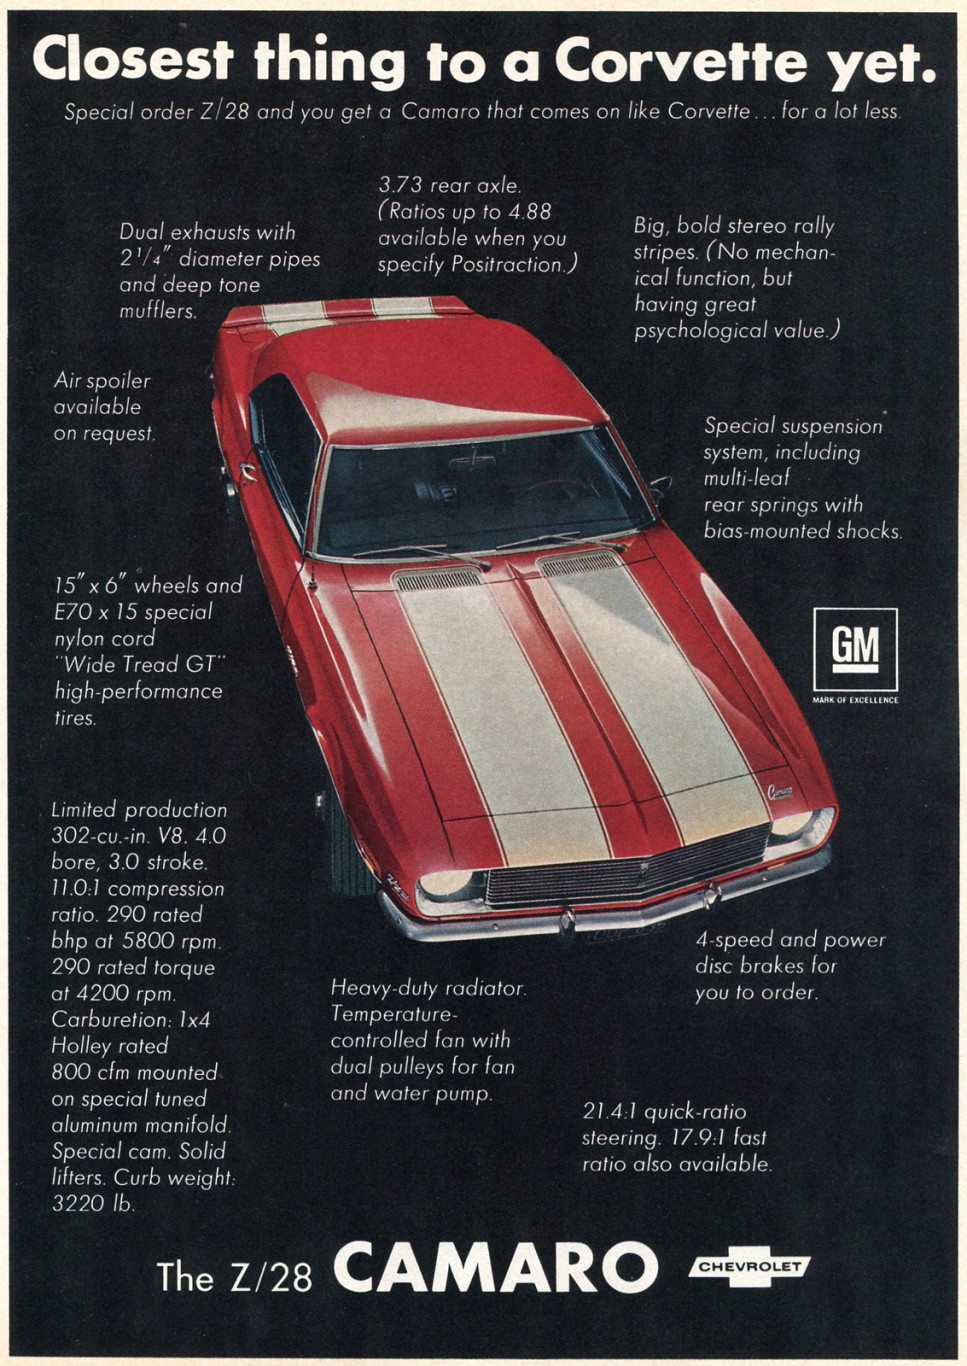 1969 Z28 Camaro Ad - Closest Thing to a Corvette Yet.